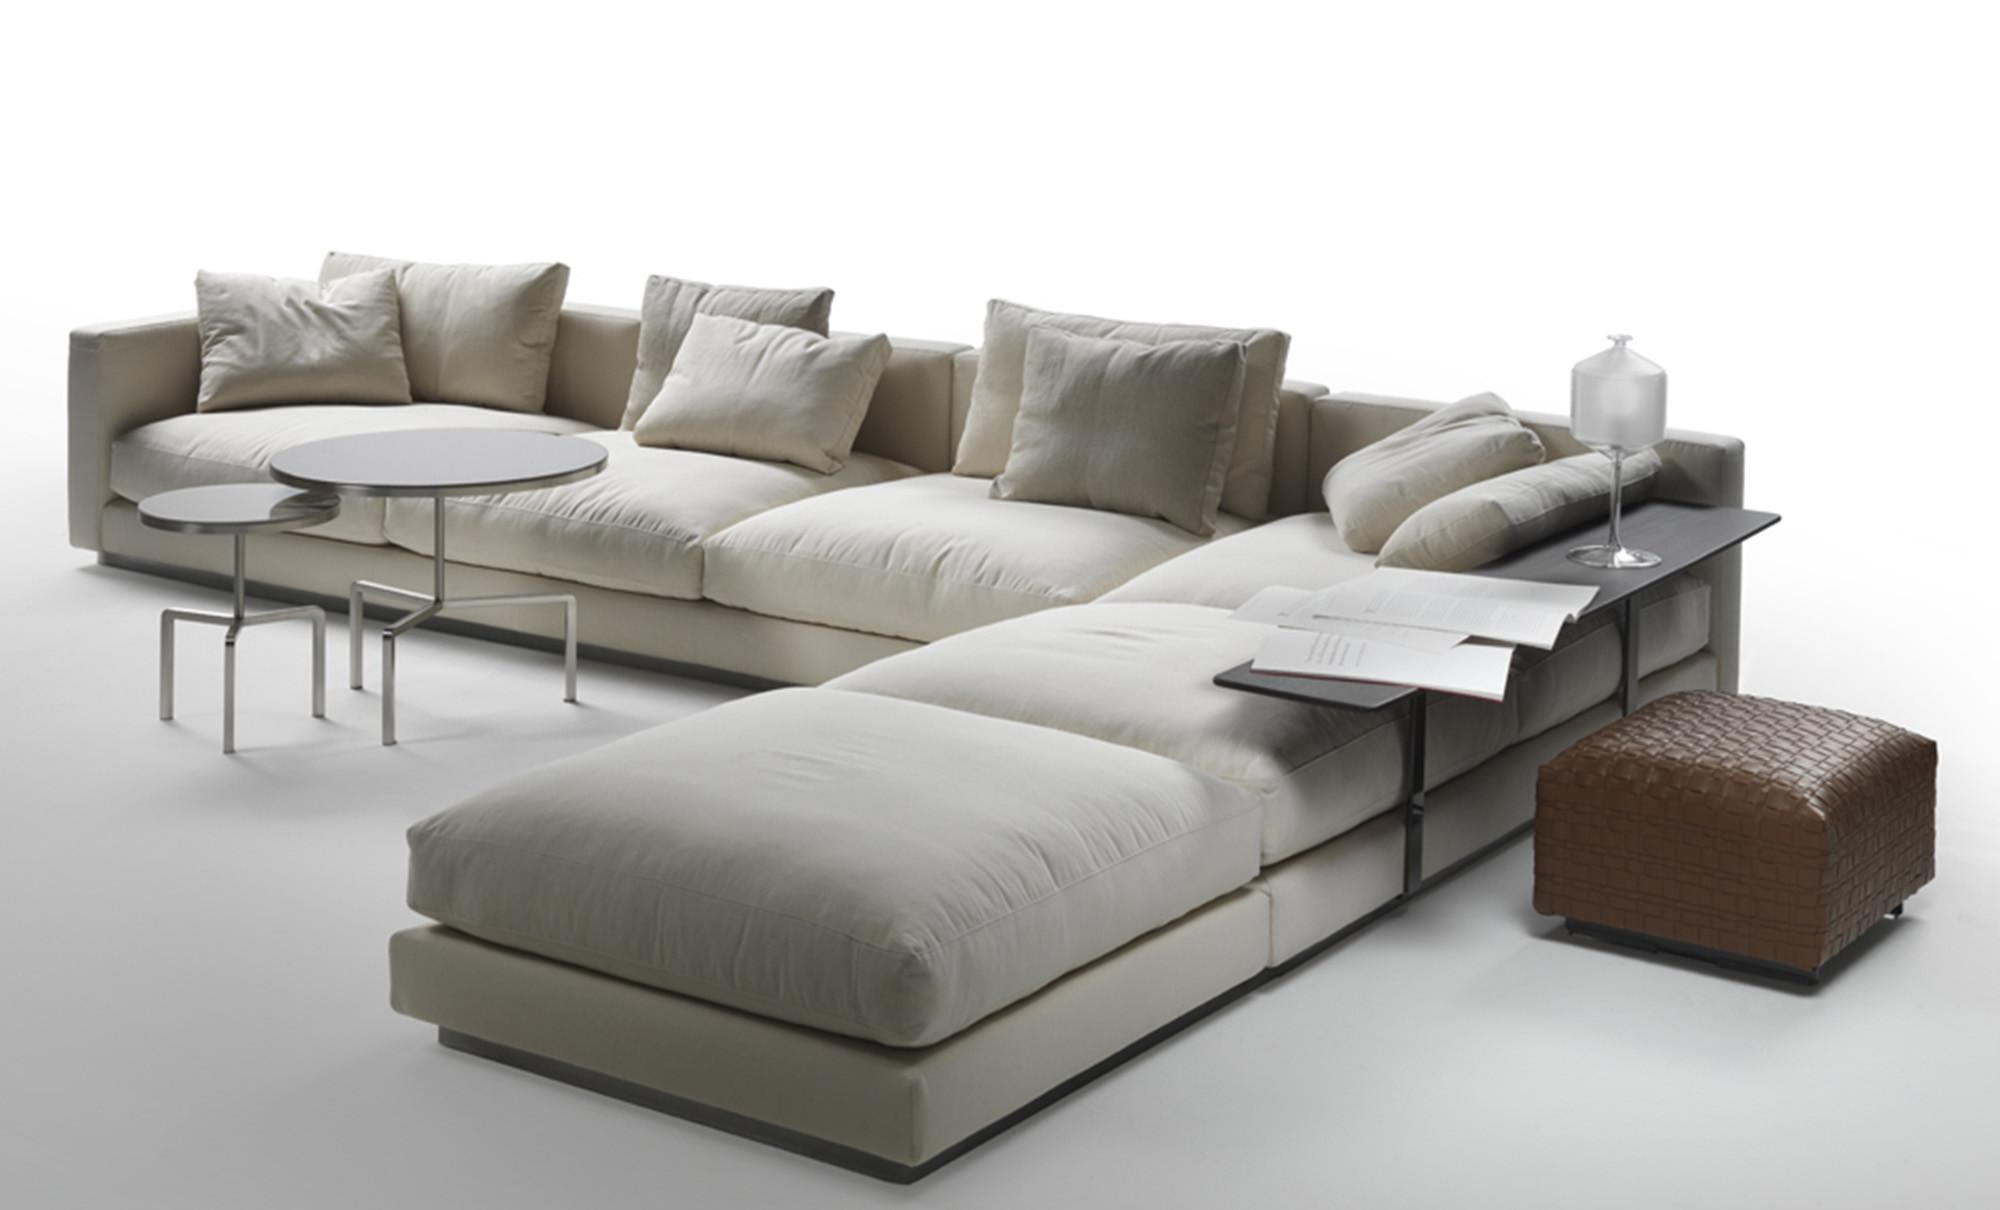 Pleasure Sofas Fanuli Furniture